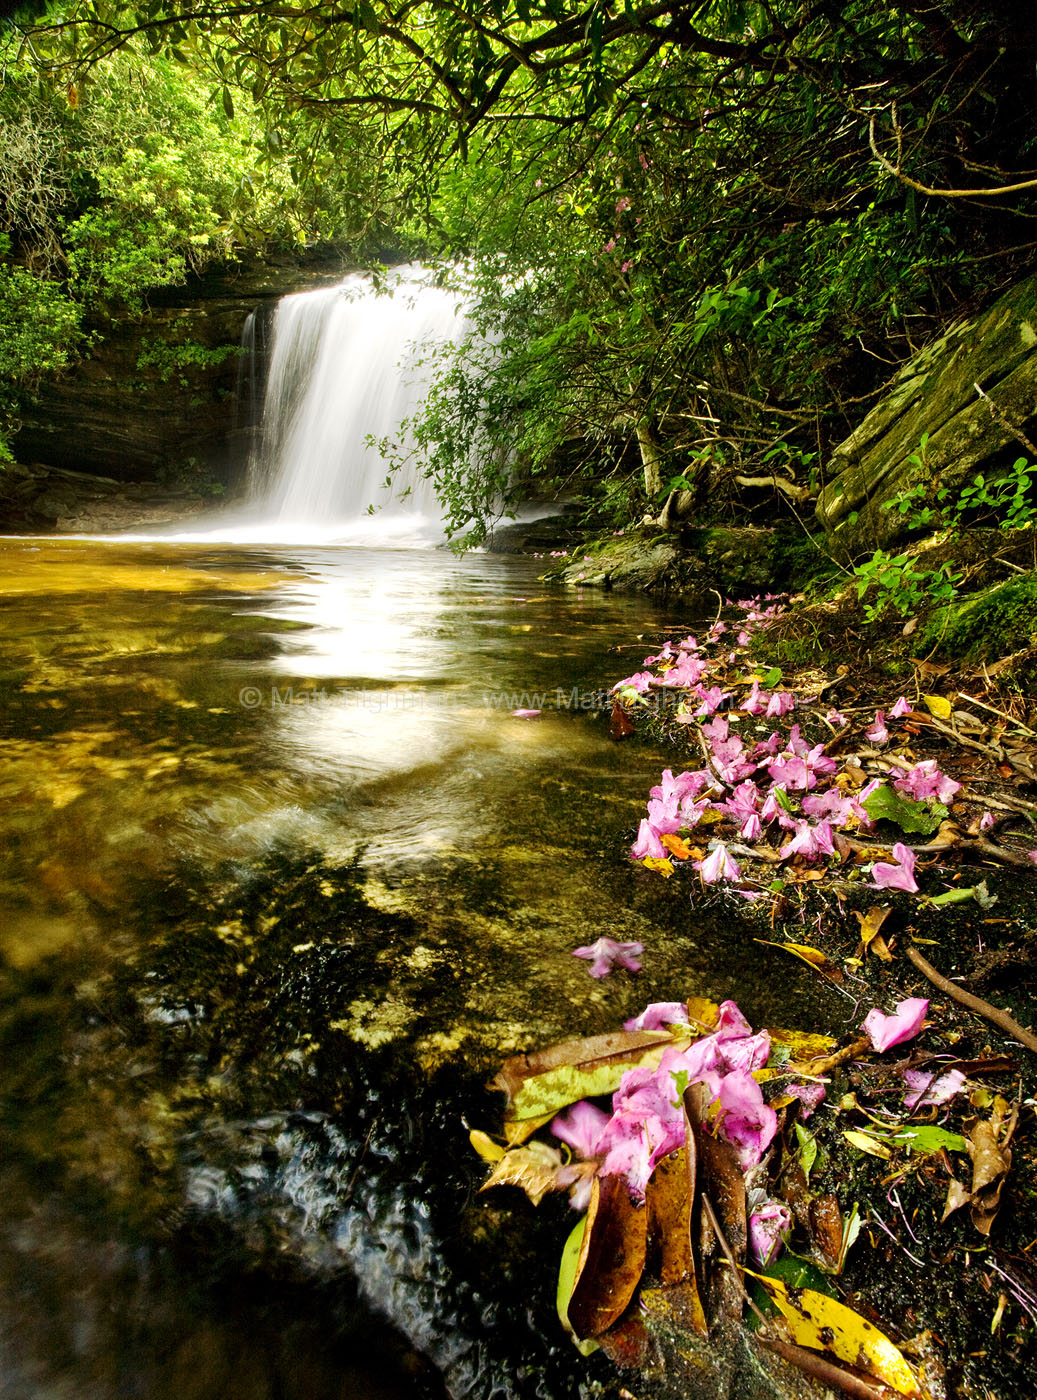 Fine art stock photograph of Schoolhouse Falls in Panthertown Valley, framed by fallen rhododendron flowers. The beautiful blooms make the waterfall even more idyllic.